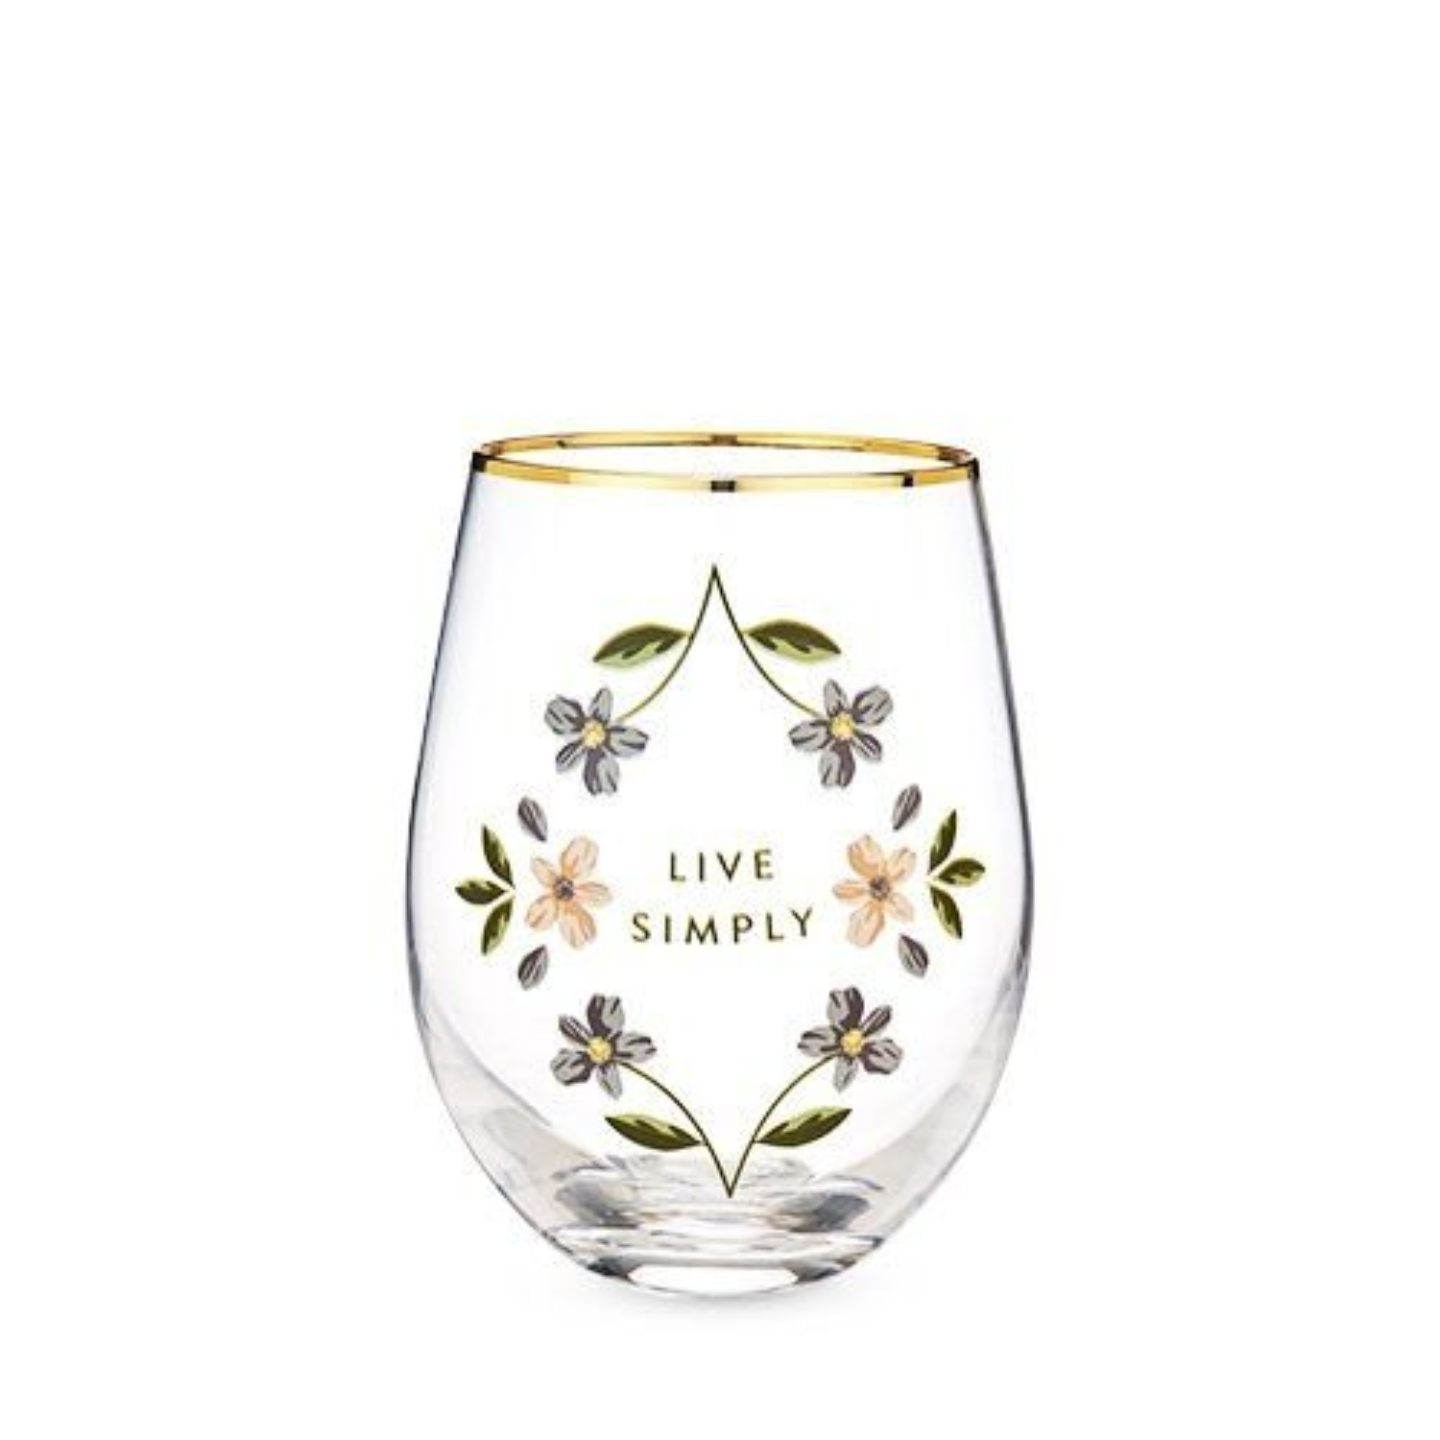 A gold rimmed stemless wine glass which says  Live Simply and is decorated by pink and blue flowers.